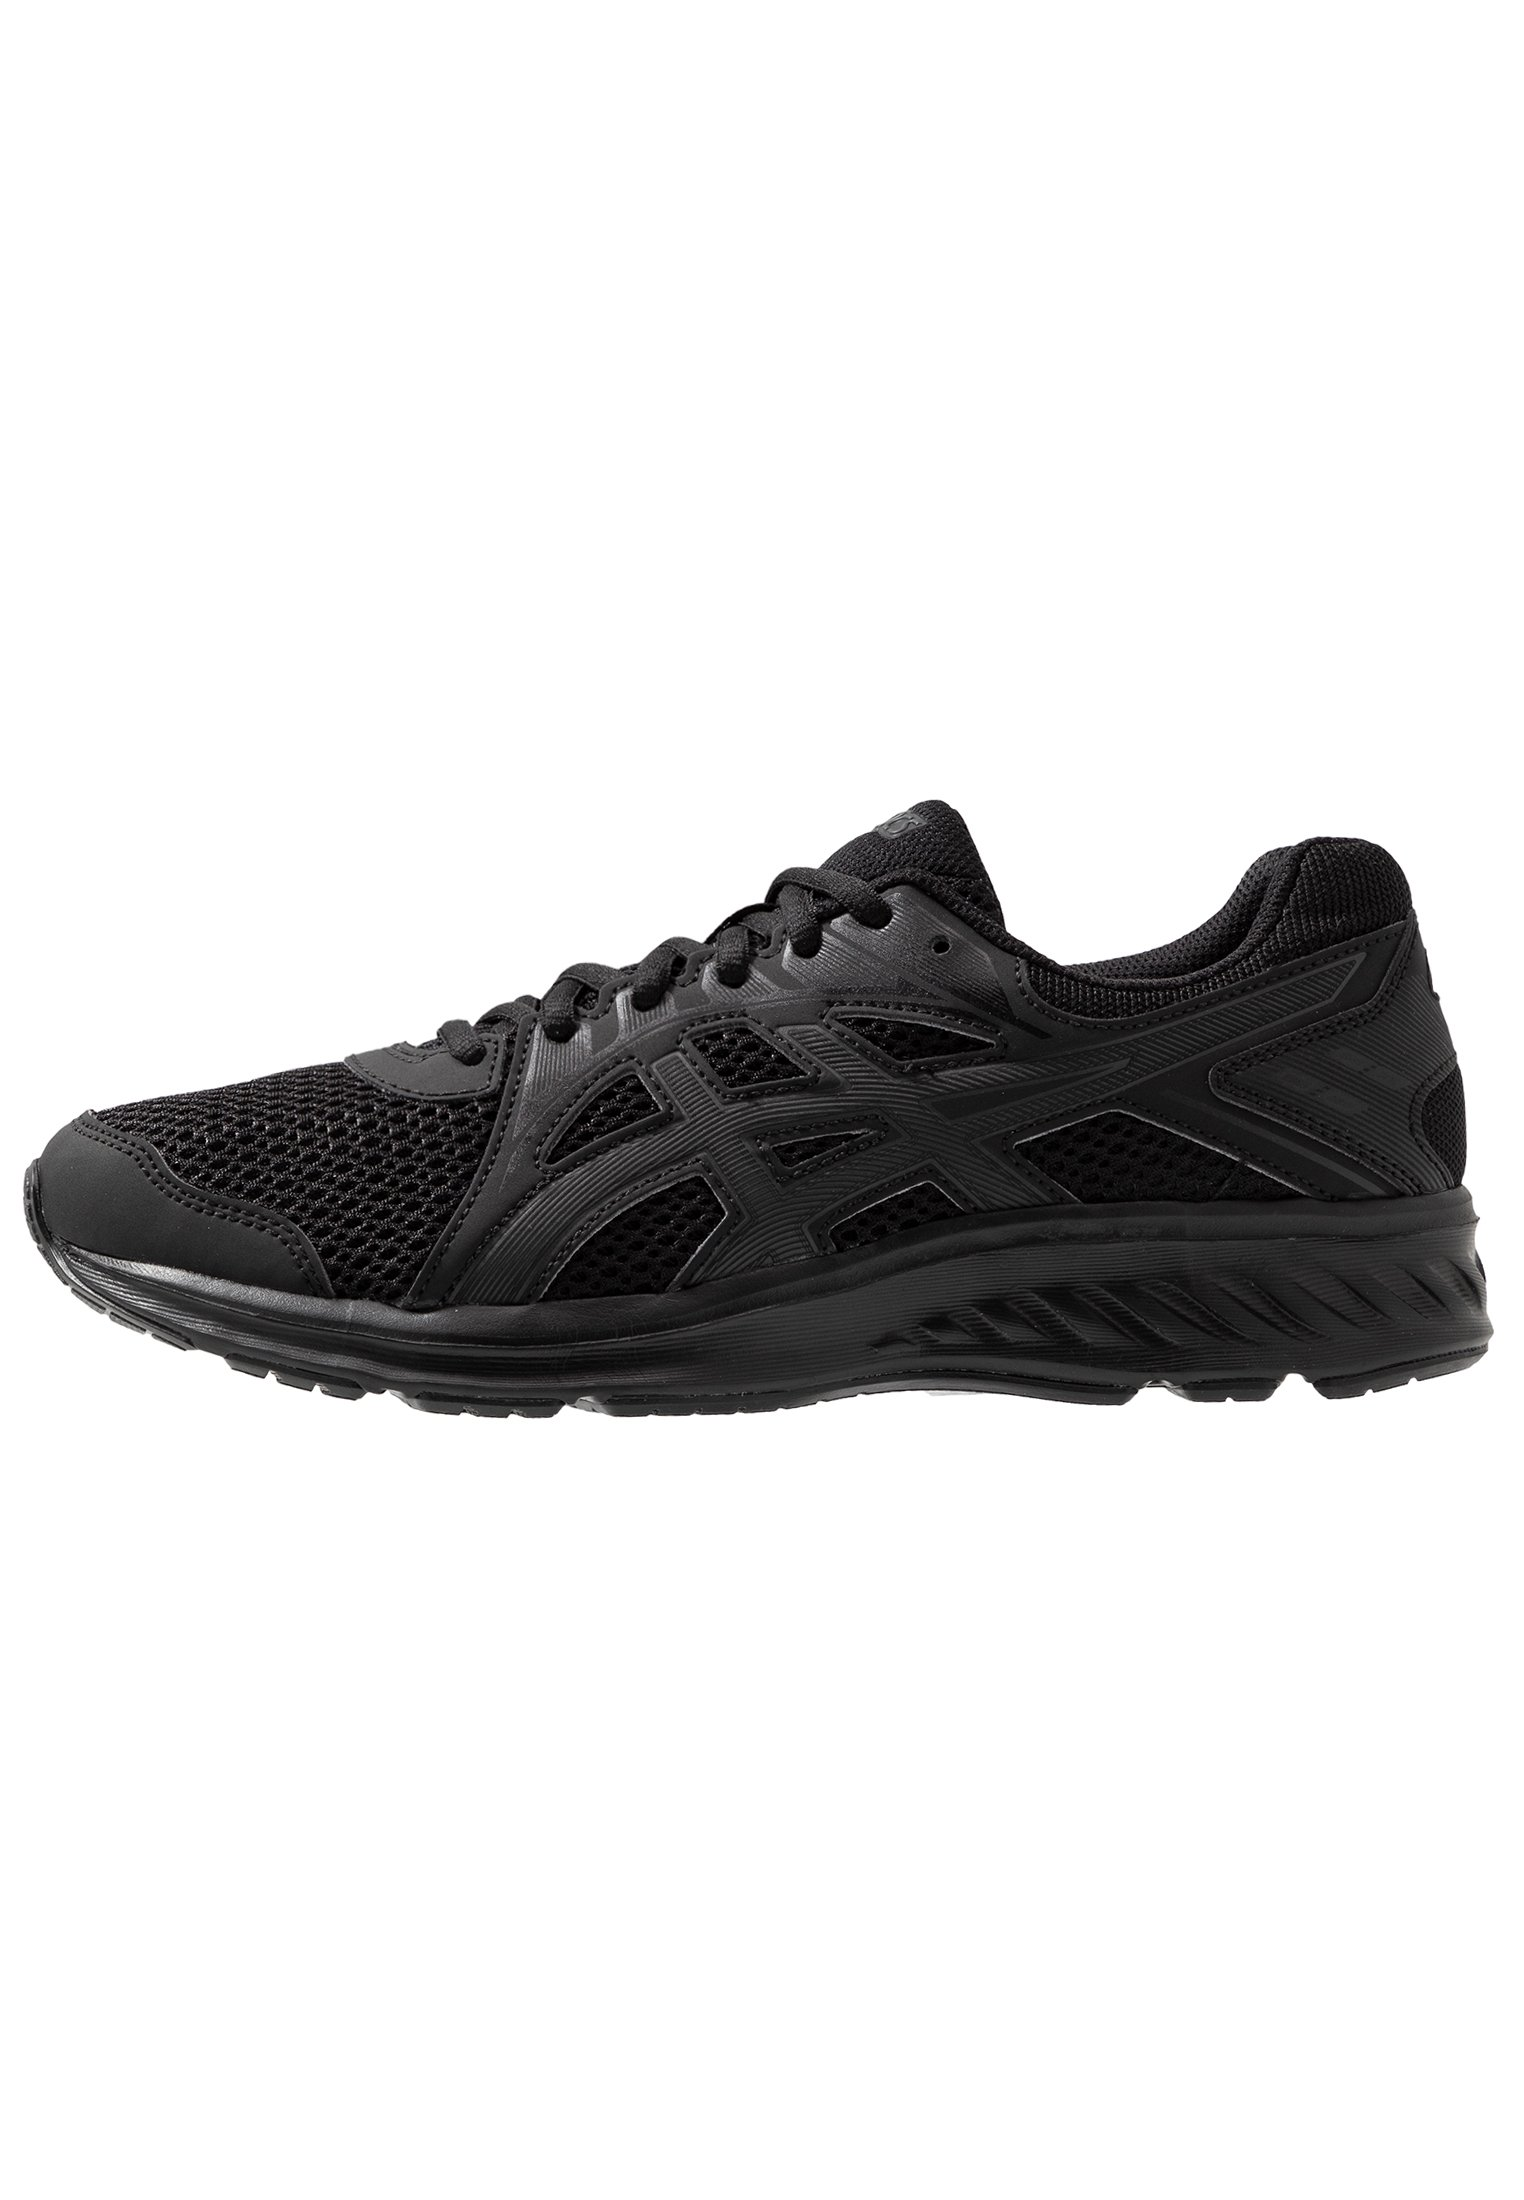 chausson hommes asics